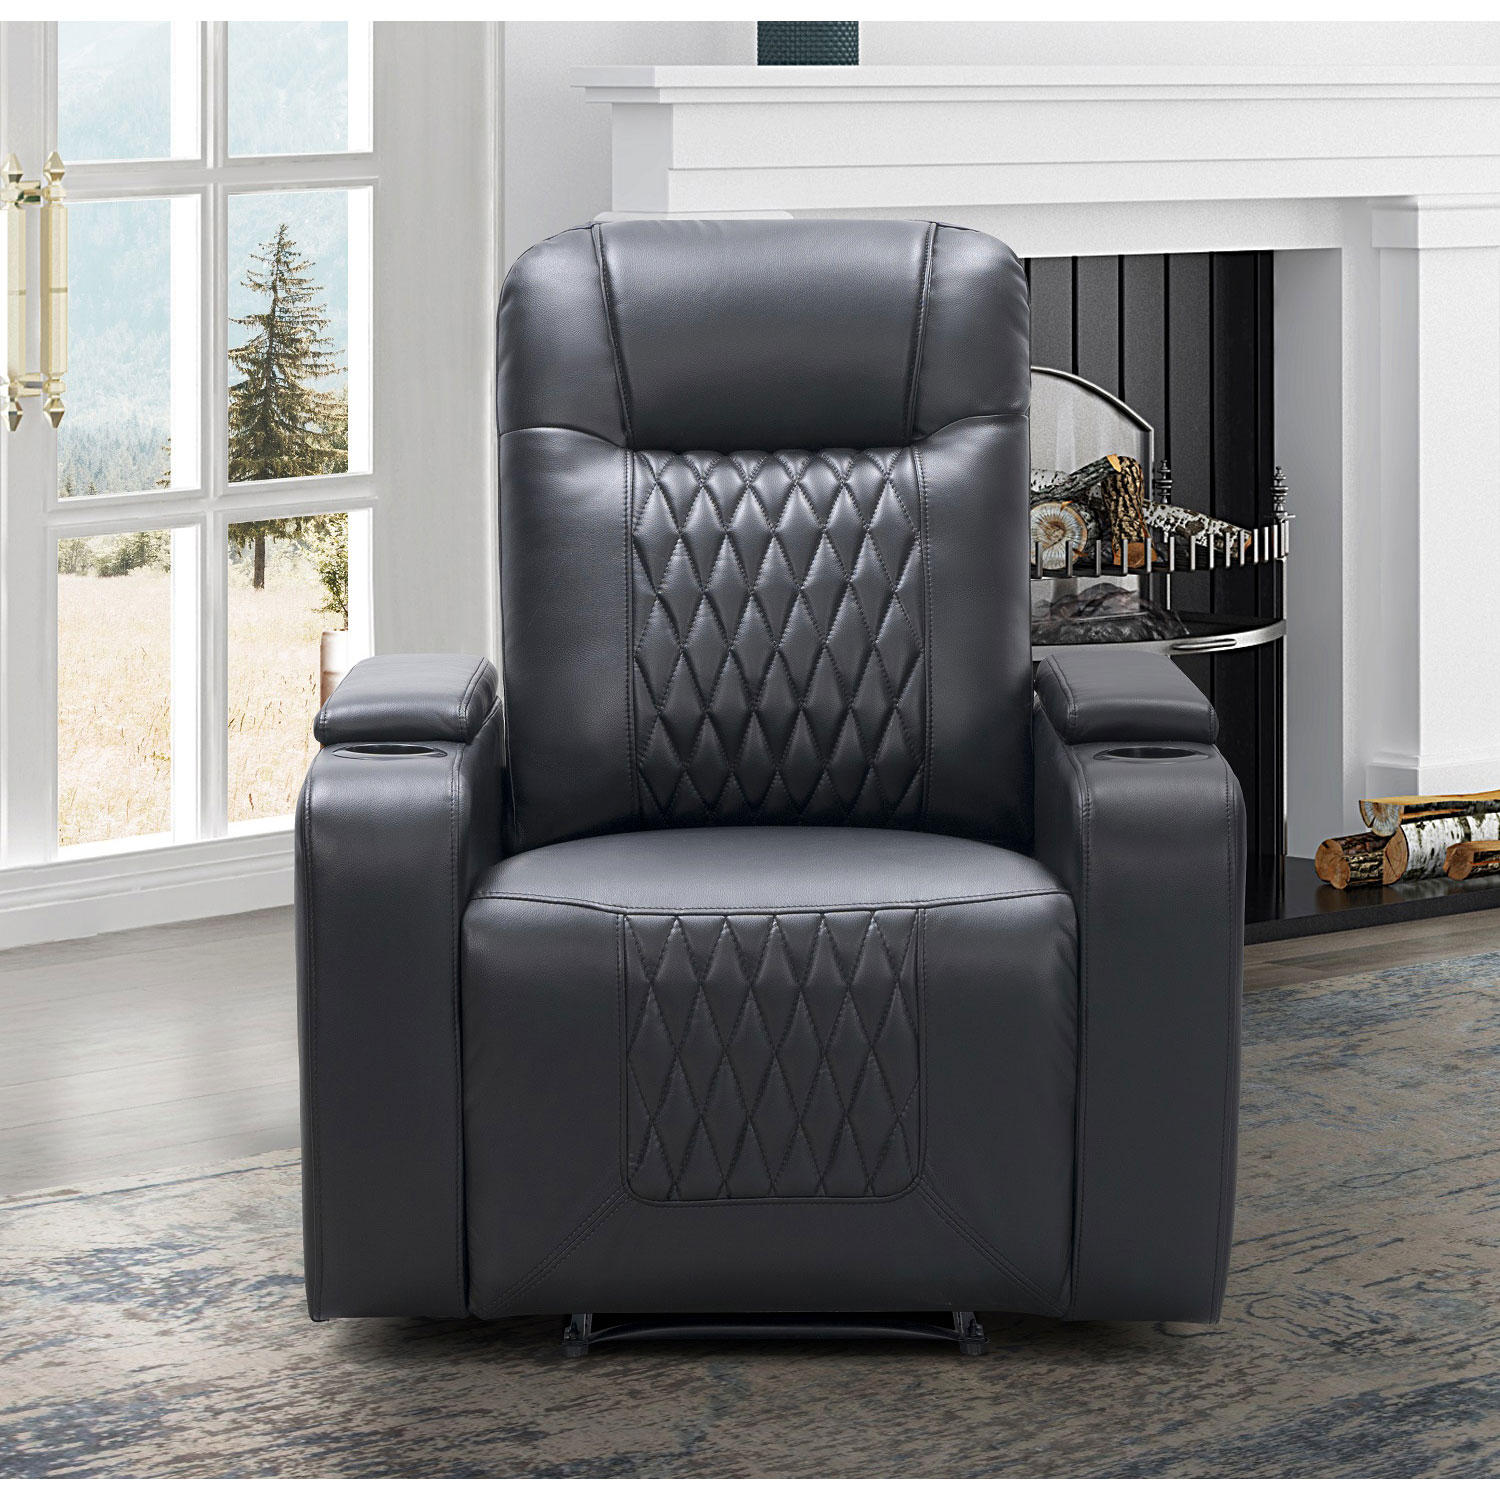 Abbyson Living Bel Air Theater Recliner